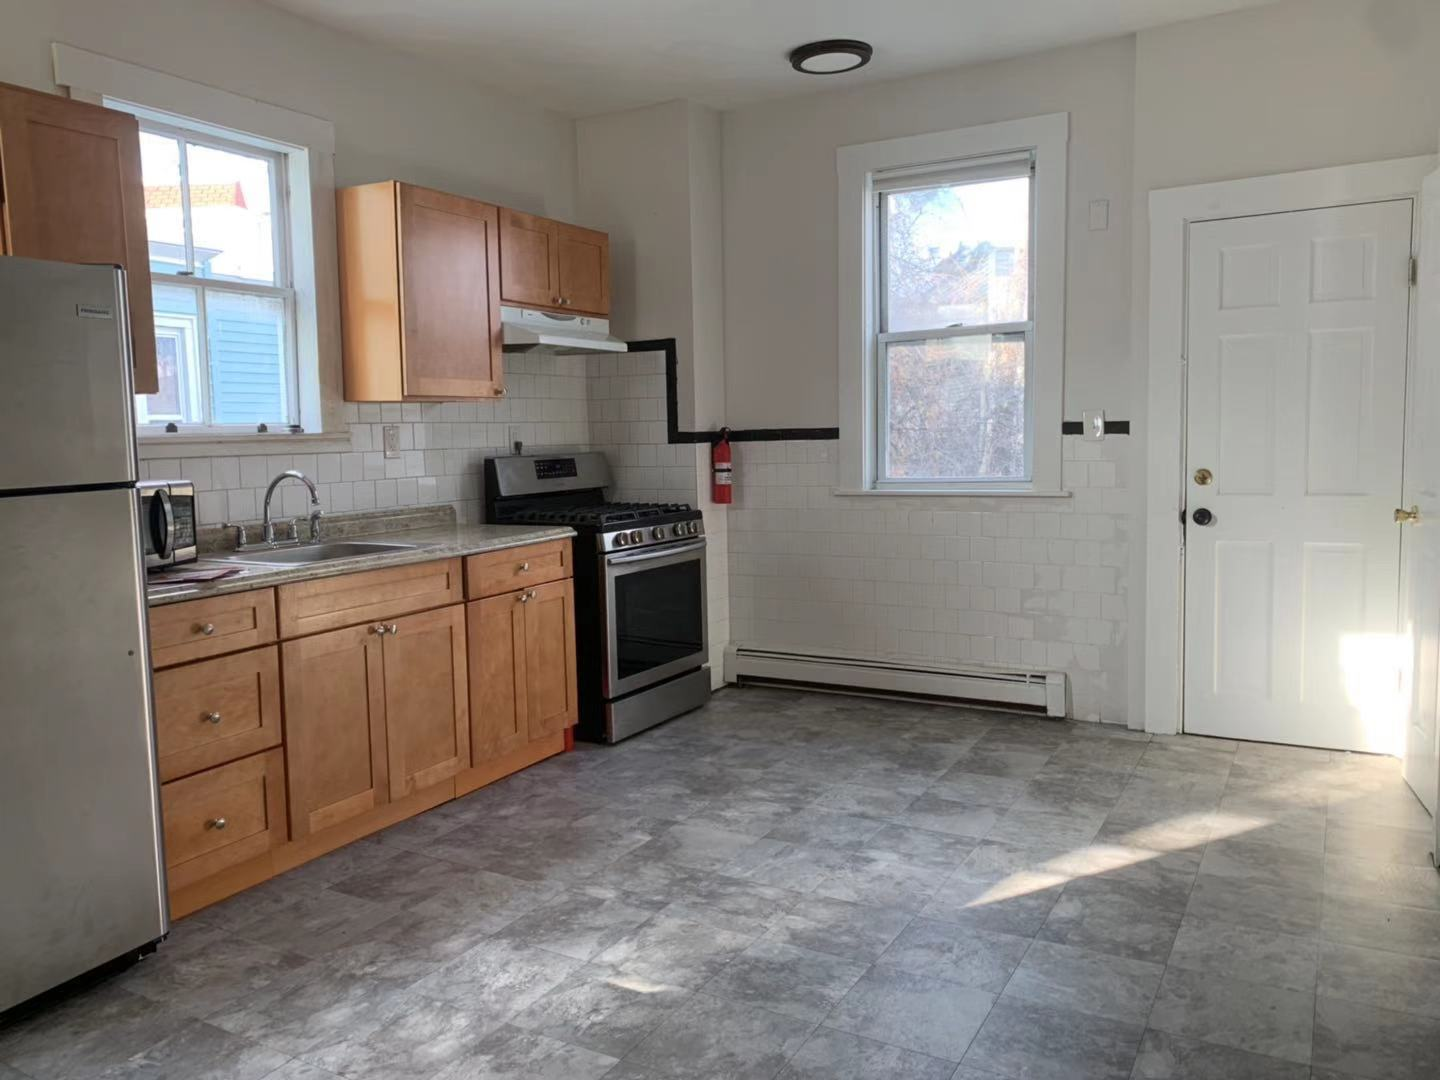 4 Beds, 2 Baths apartment in Boston, Dorchester for $2,800